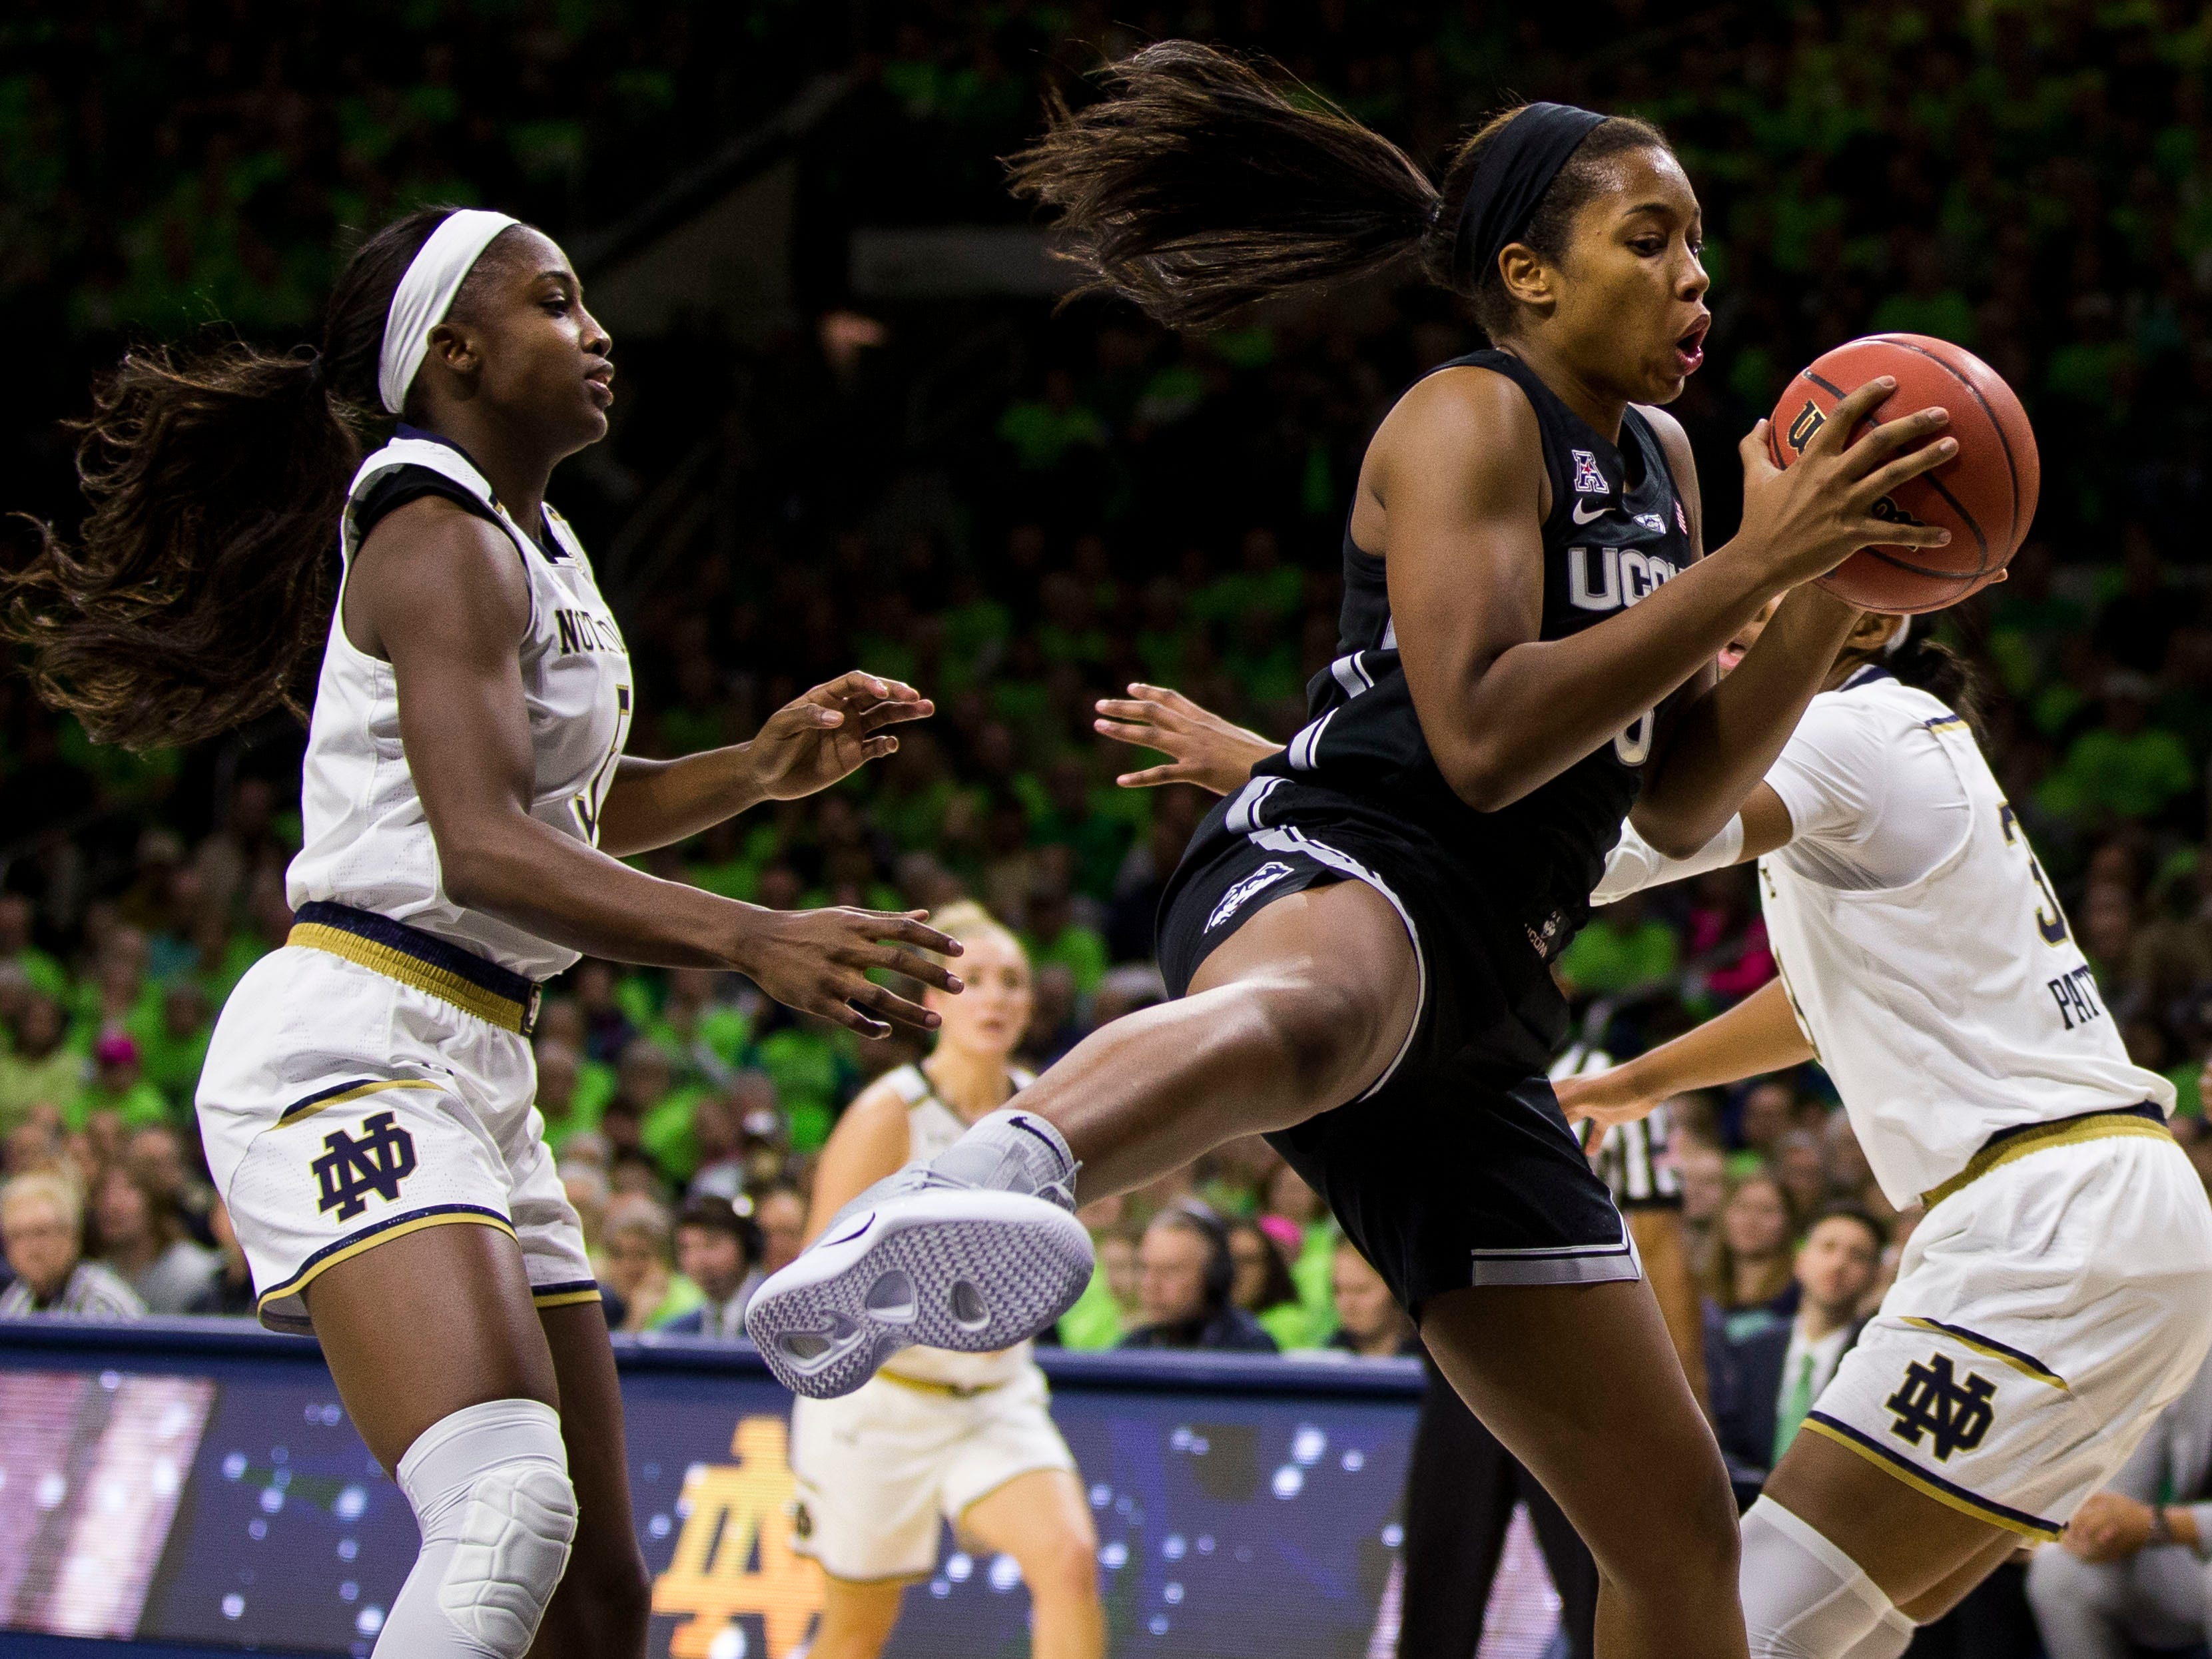 Connecticut's Megan Walker, center, grabs a rebound between Notre Dame's Jackie Young, left, and Danielle Patterson during the first half of an NCAA college basketball game Sunday, Dec. 2, 2018, in South Bend, Ind.